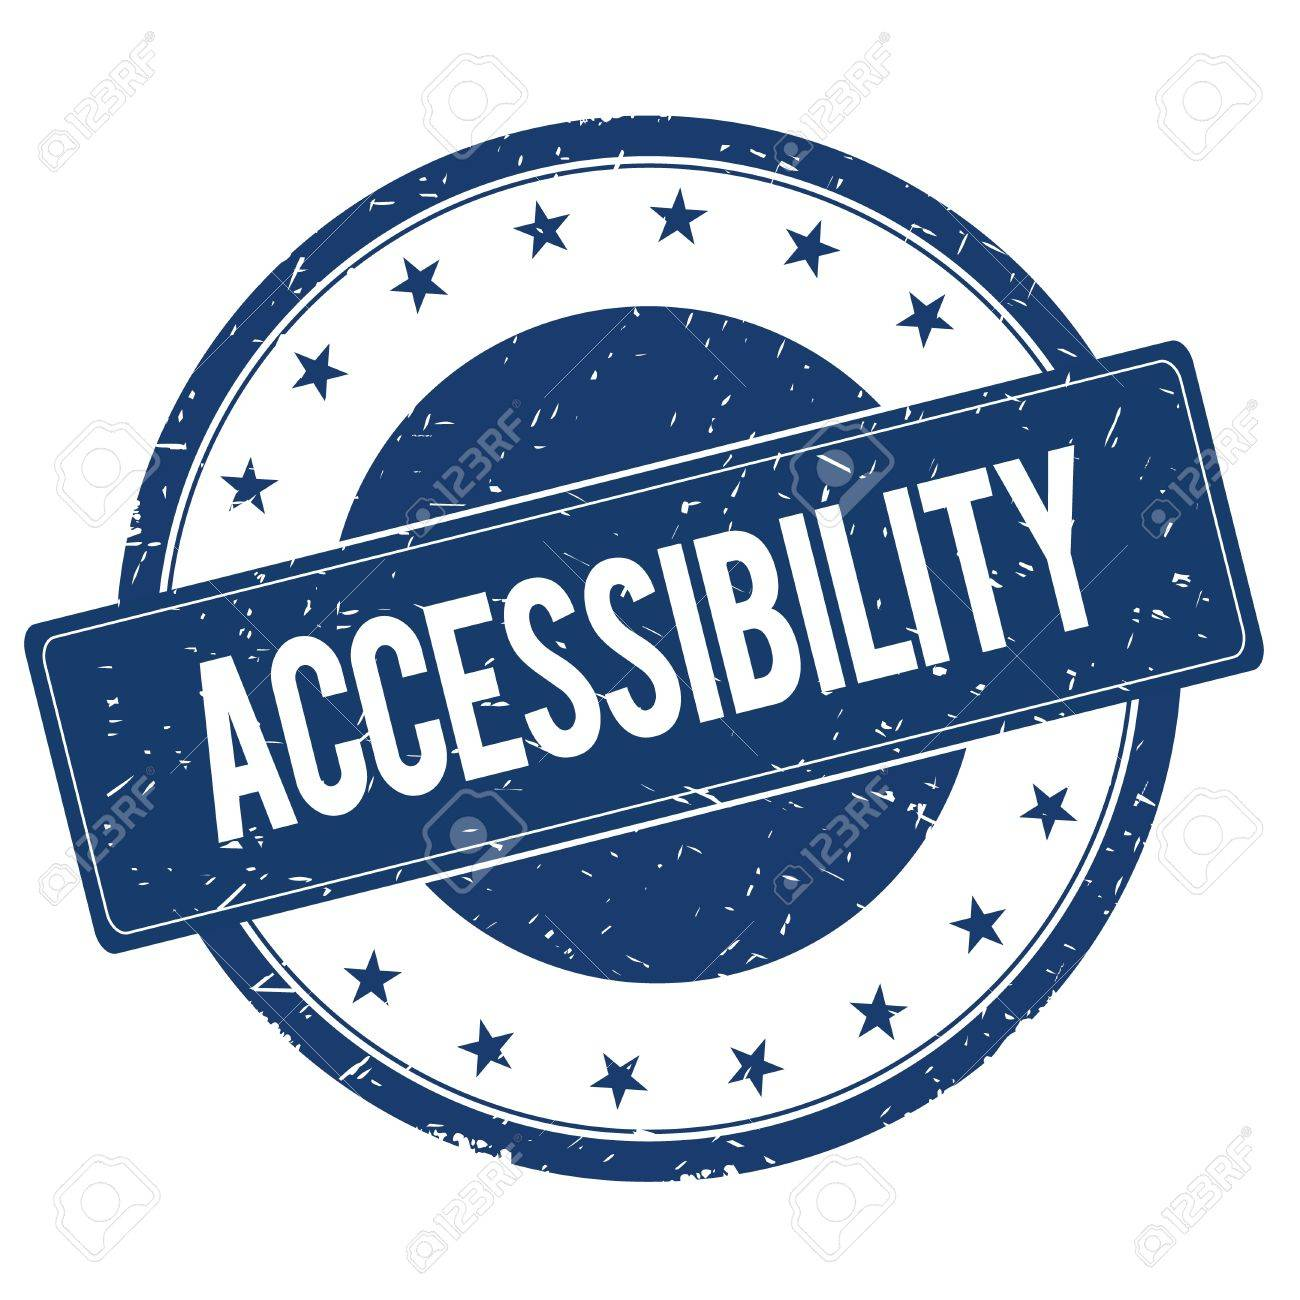 Image result for the word accessability